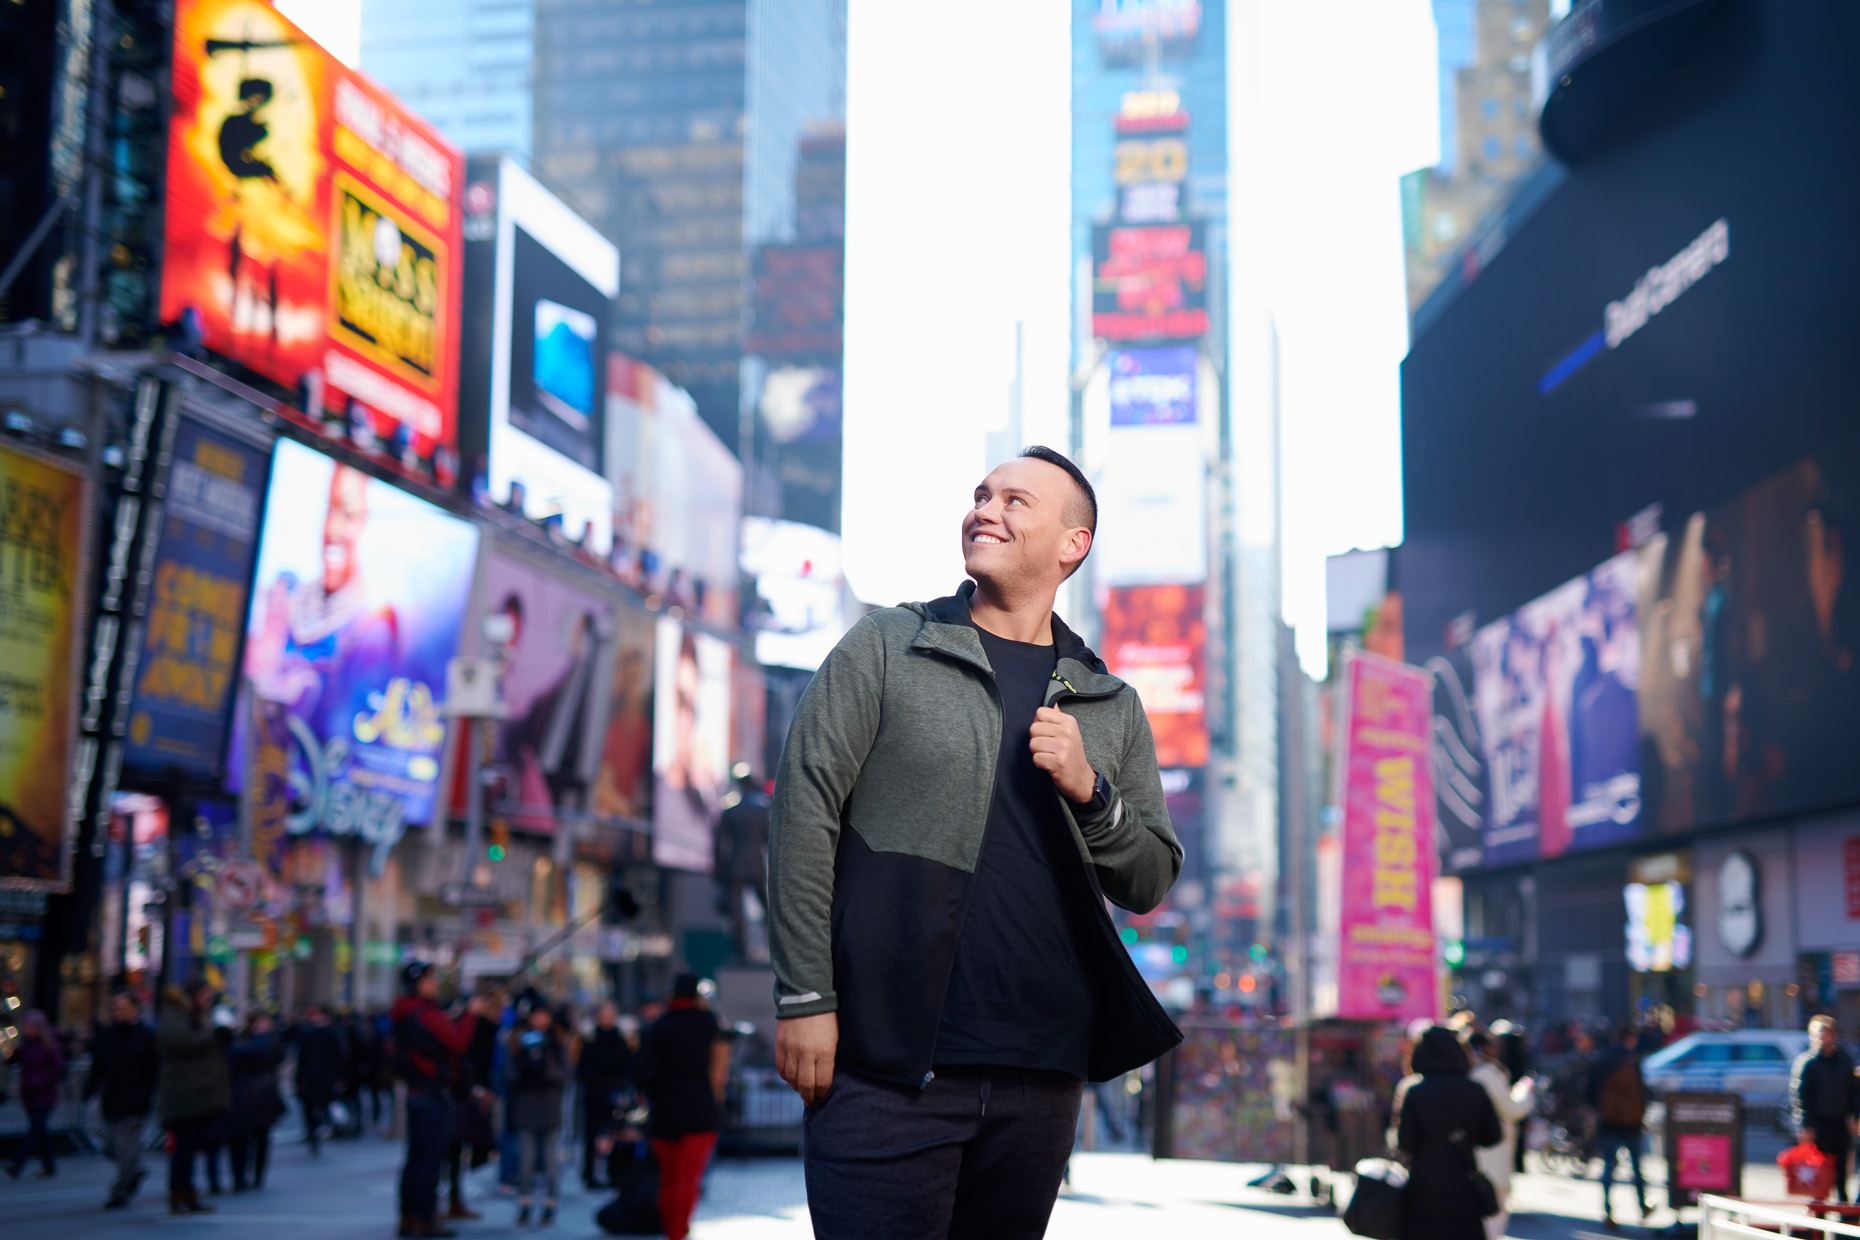 editorial-portraits-times-square-man